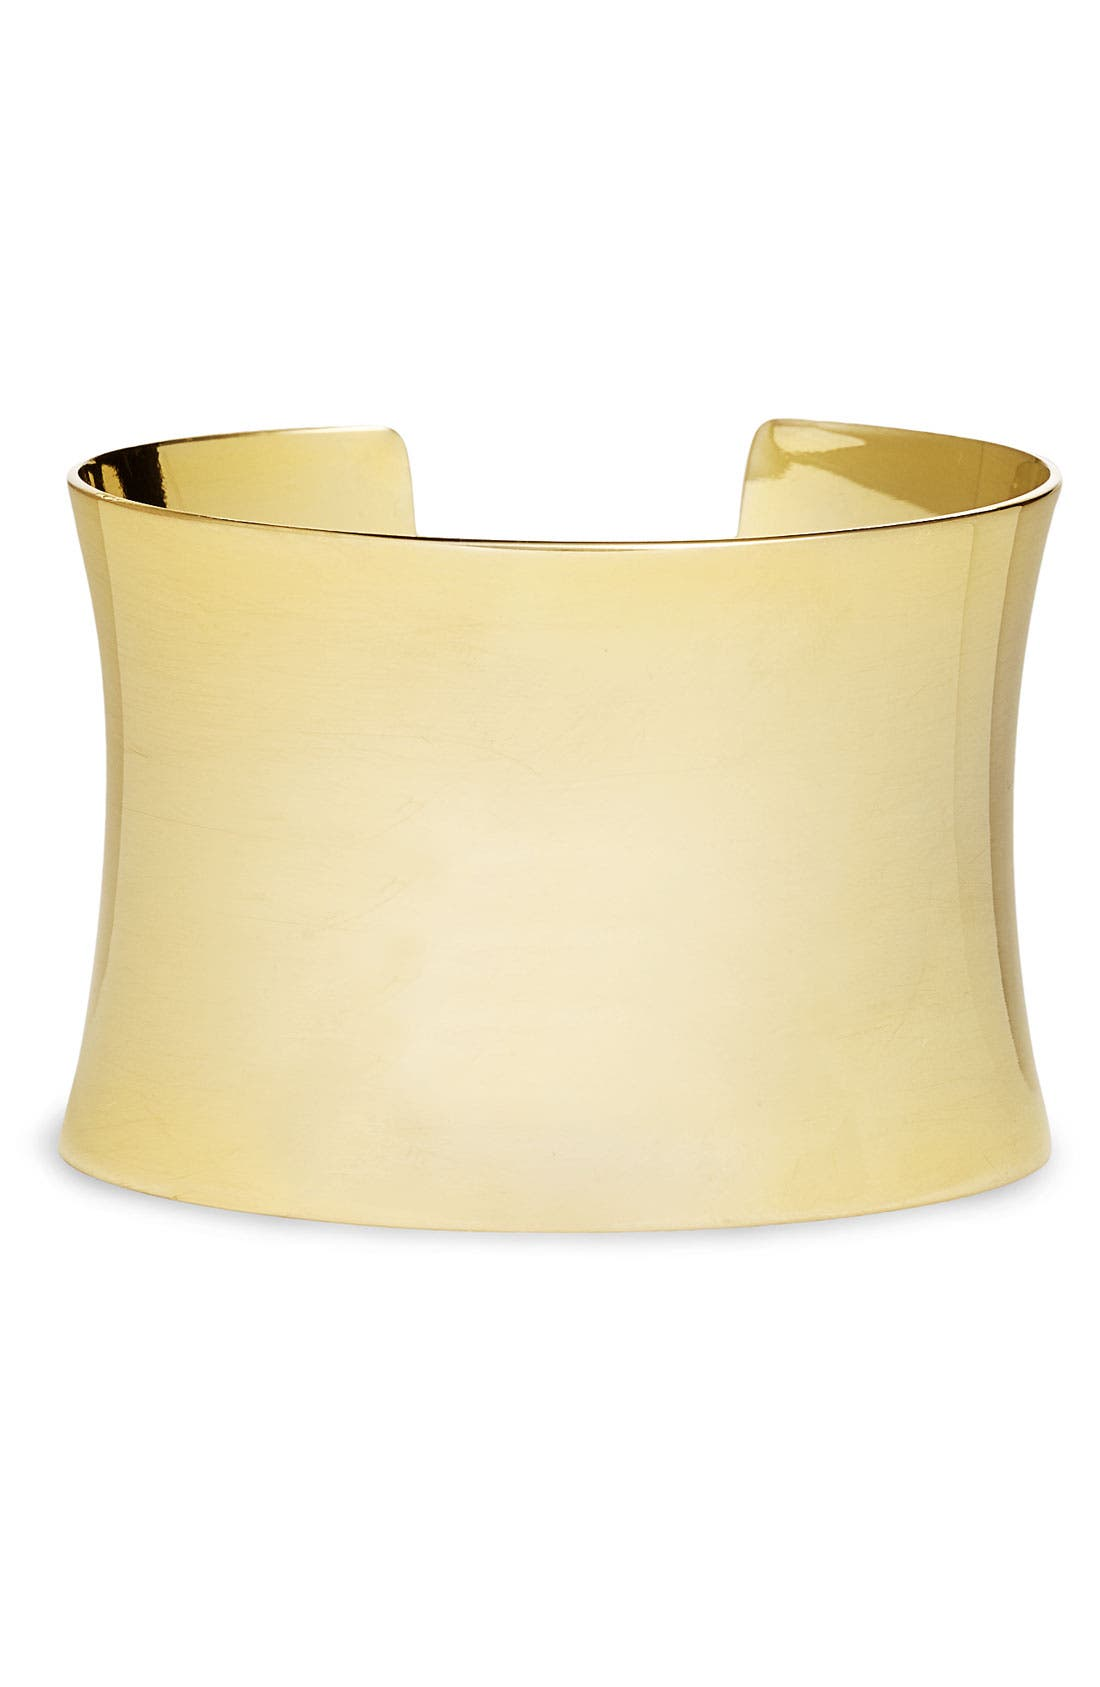 Main Image - Nordstrom 'Super Shiny' Curved Cuff